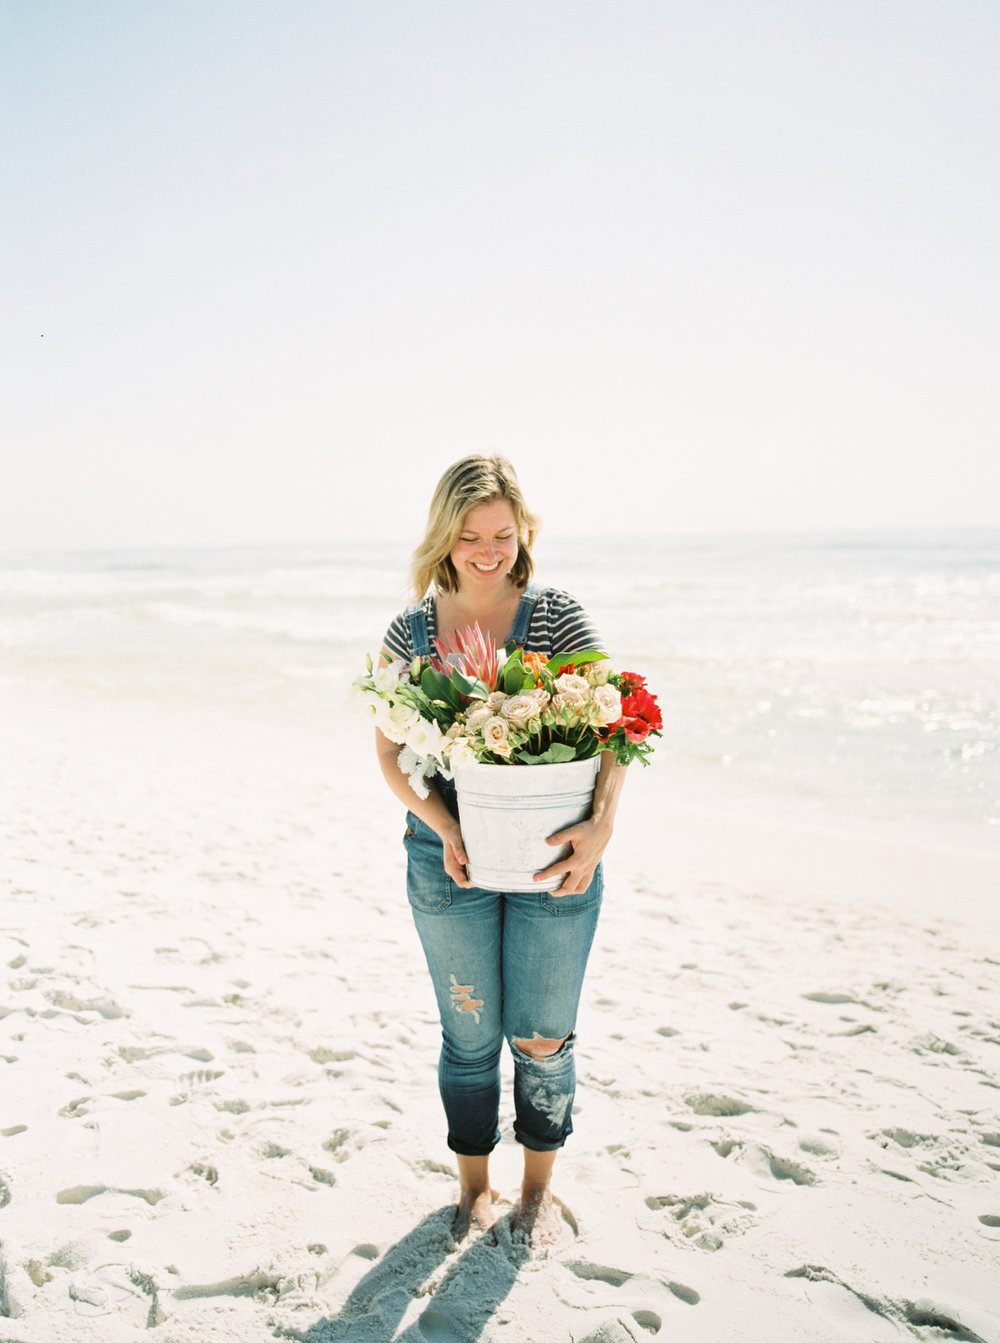 Merry Floral is Mary Johnston - Mary, a Louisiana girl, has never lived elsewhere. Her love for home runs deep, as does her love of travel, new spaces, and new faces. As a young girl, Mary and her friend kept a binder - thoughtfully titled